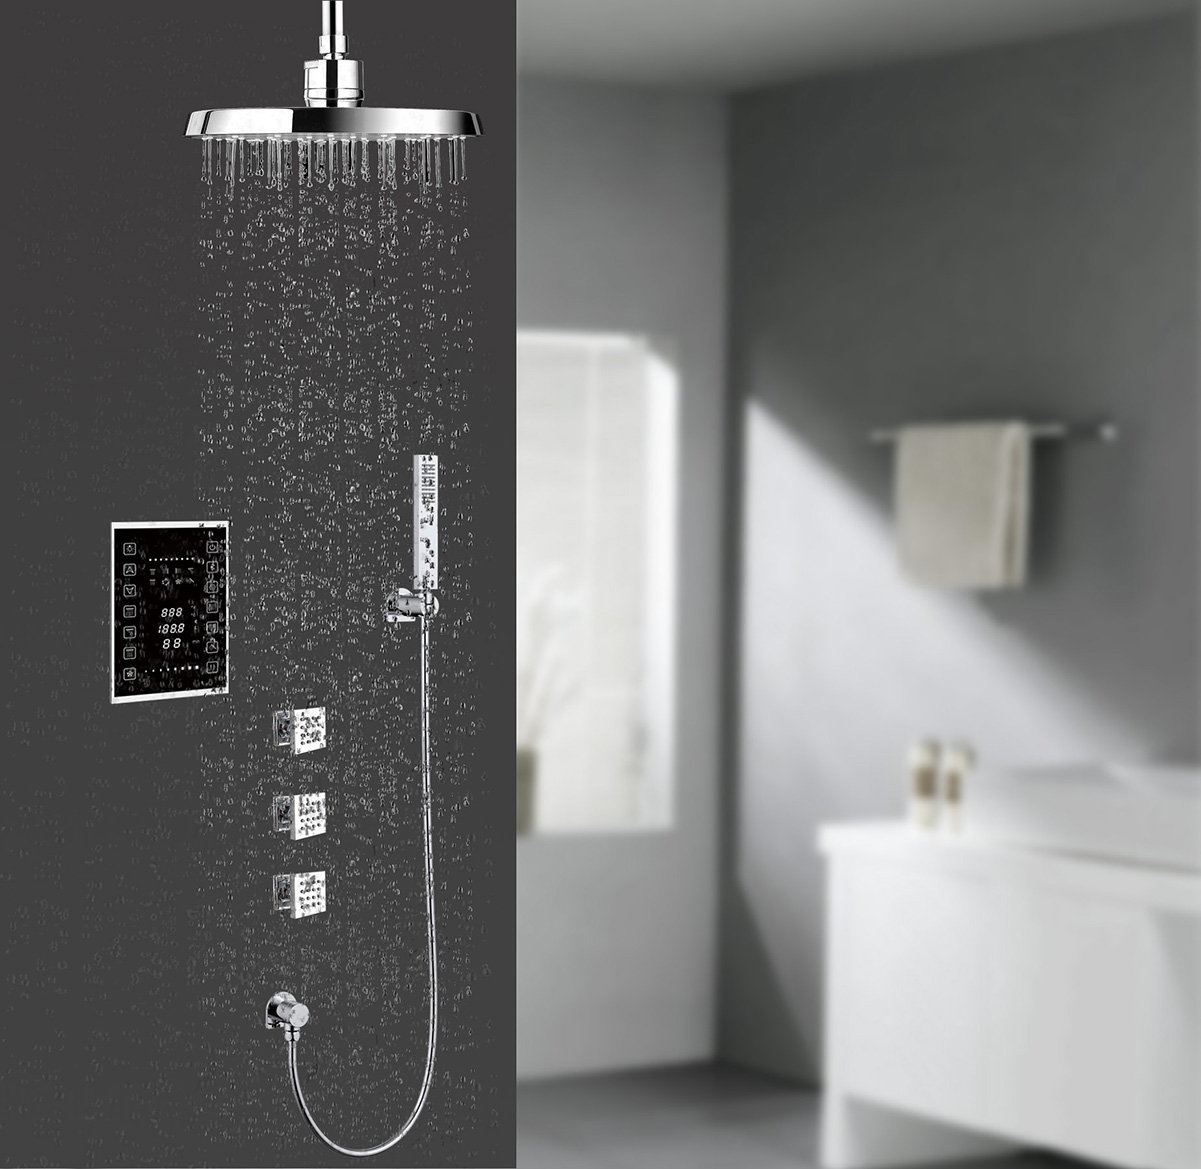 Model No.: H306 Thermostat  Shower  Controller(6water outlets)